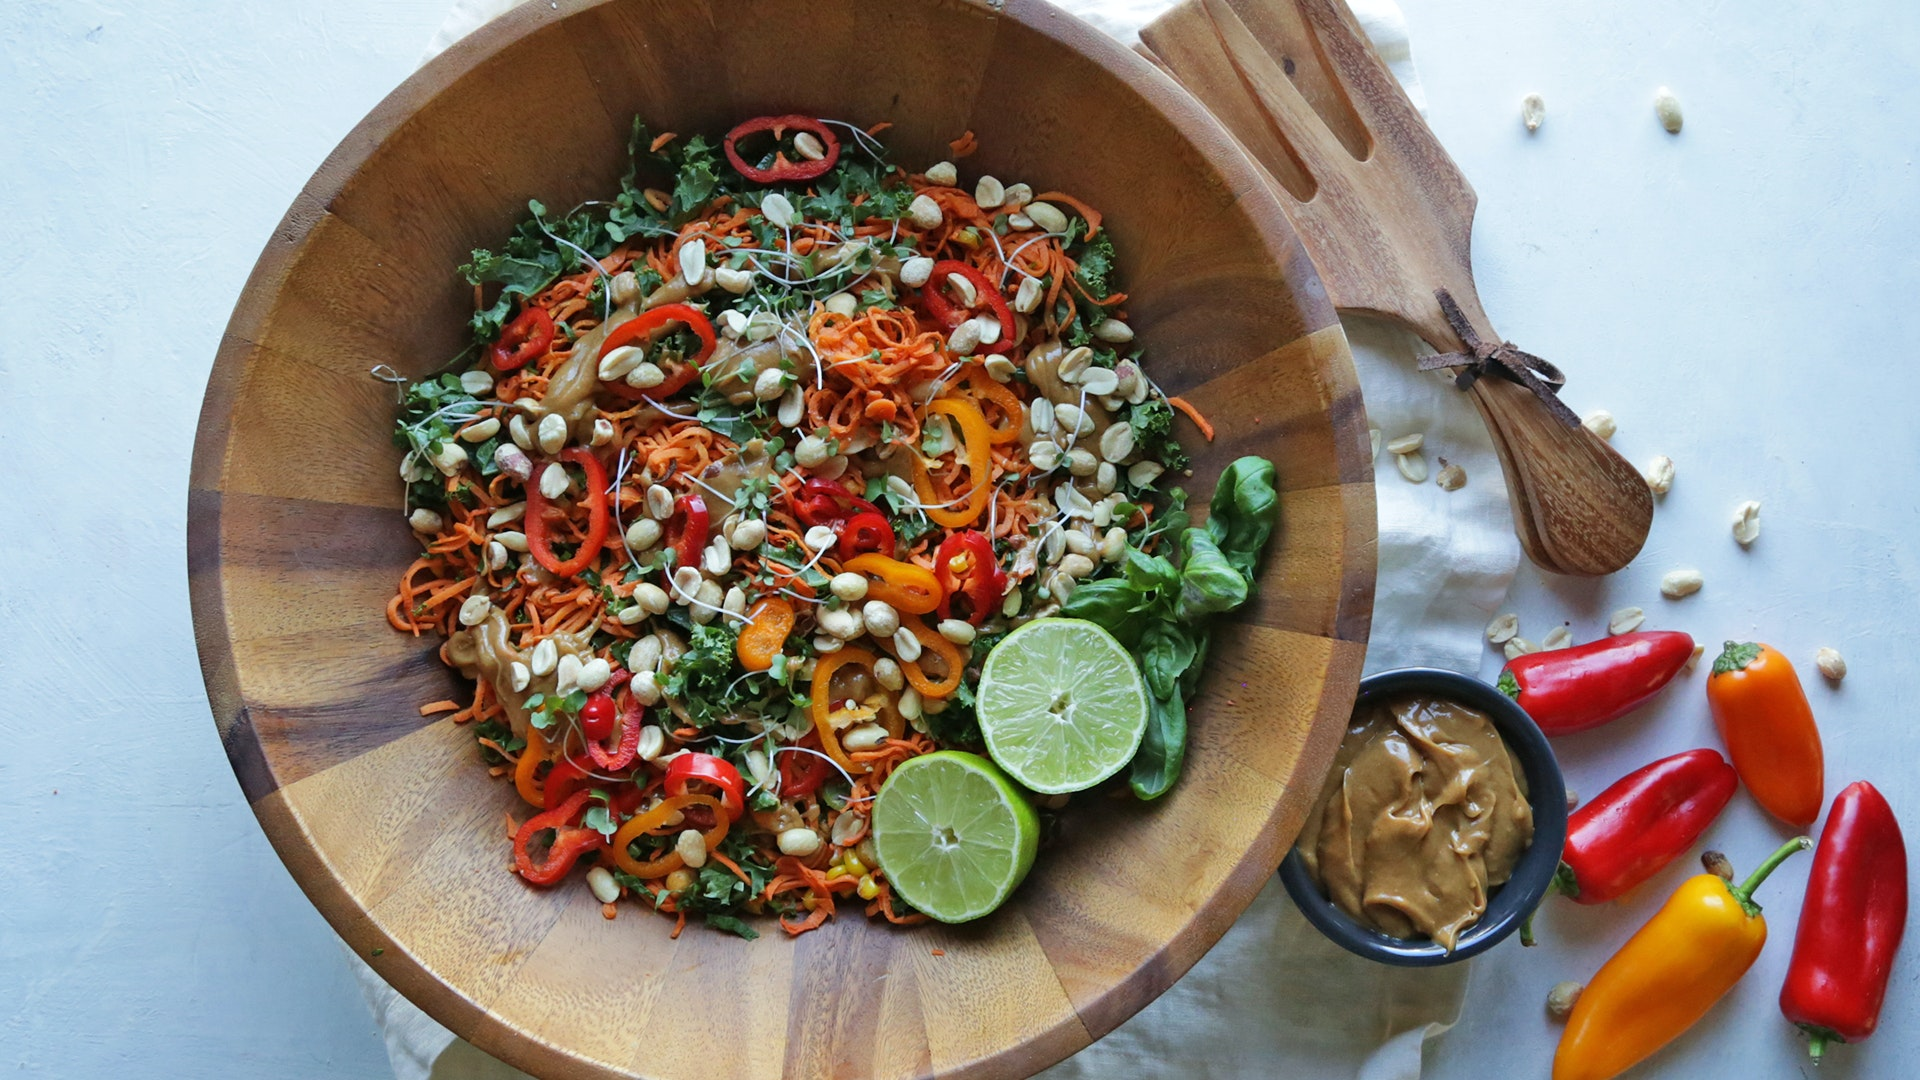 Thai Sweet Potato Salad with Peanut Butter Dressing